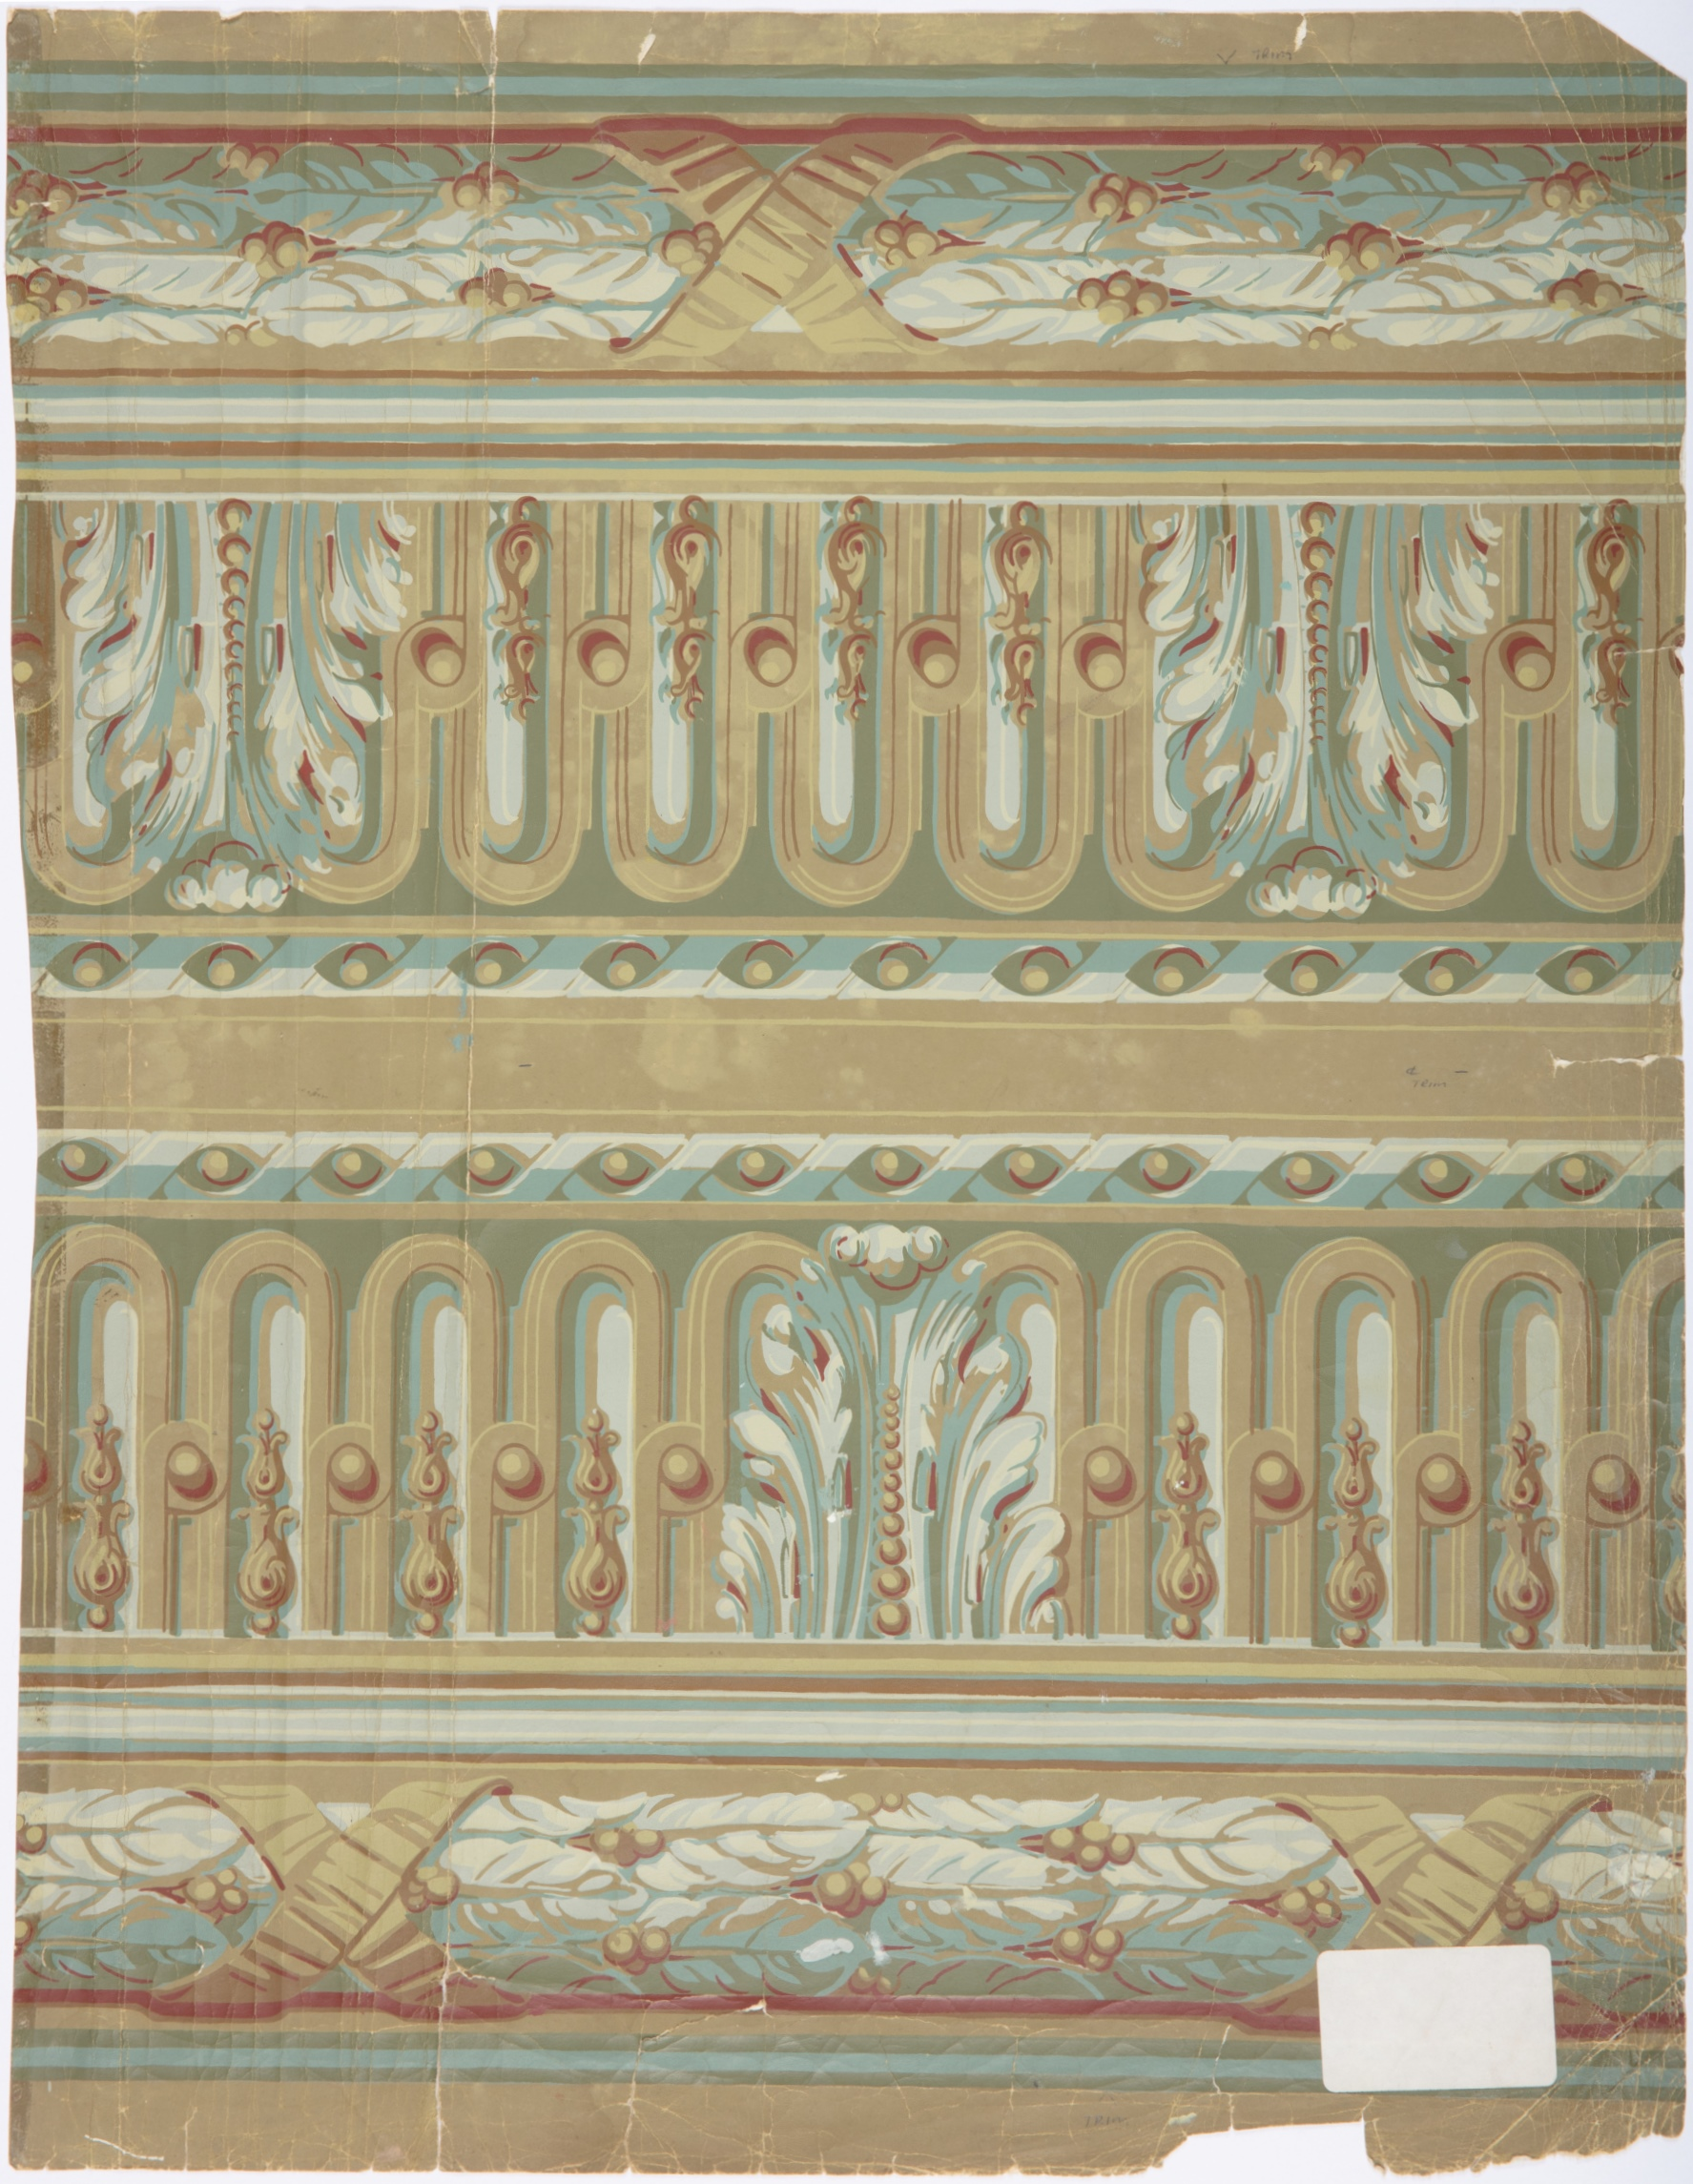 Wallpaper frieze recreated for the Strangers' Rooms, Parliament House, Sydney